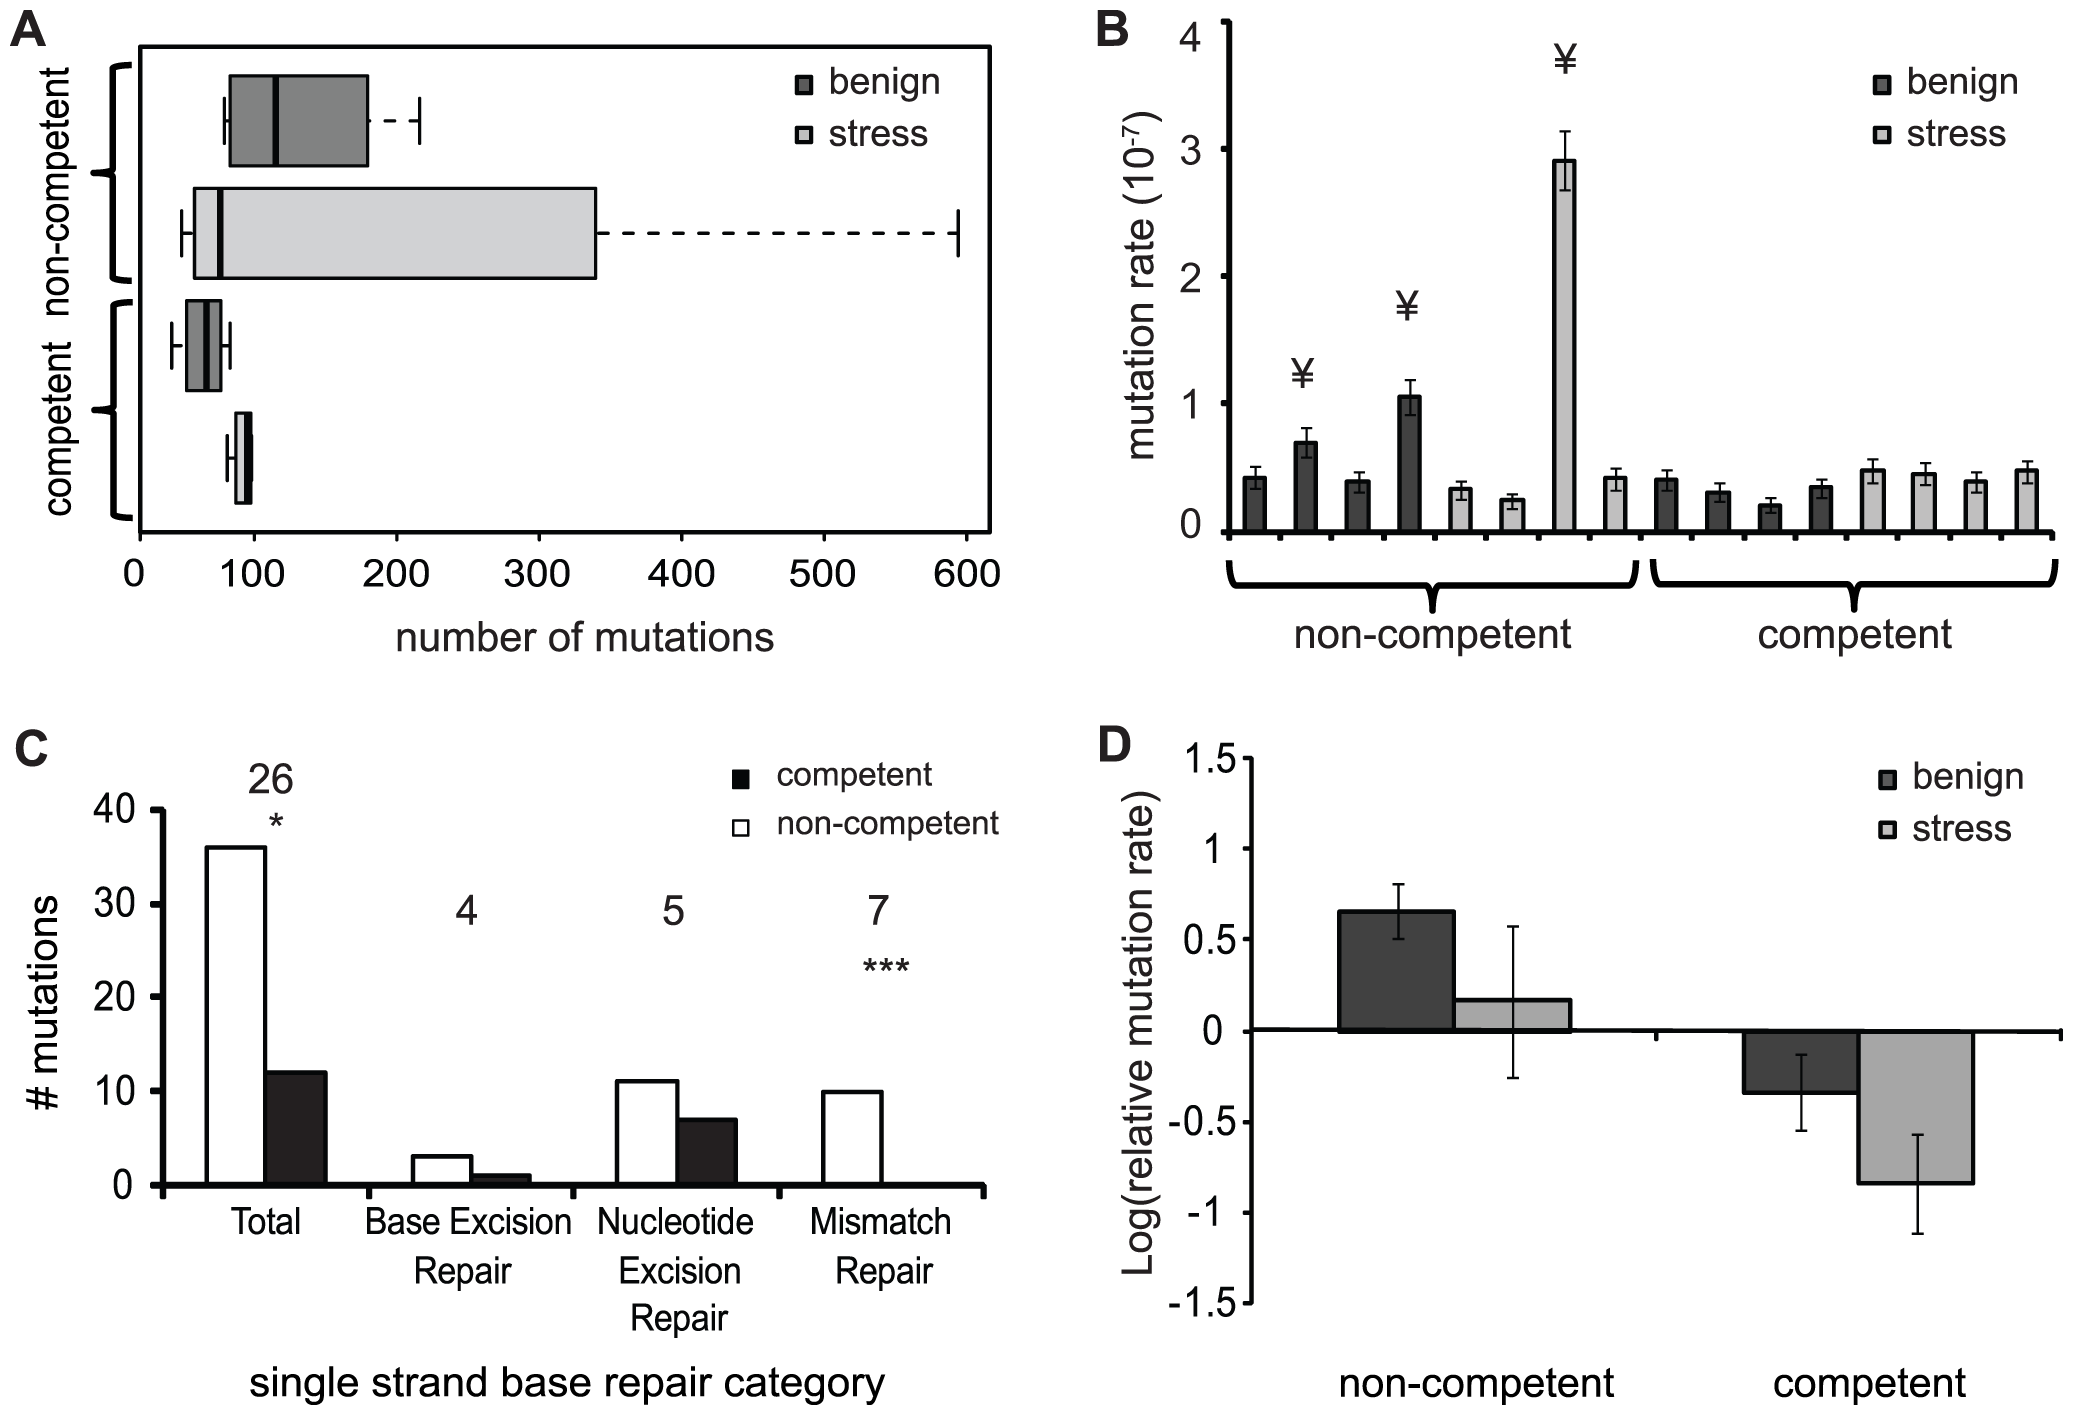 Number of mutations and mutation rates of evolved populations.